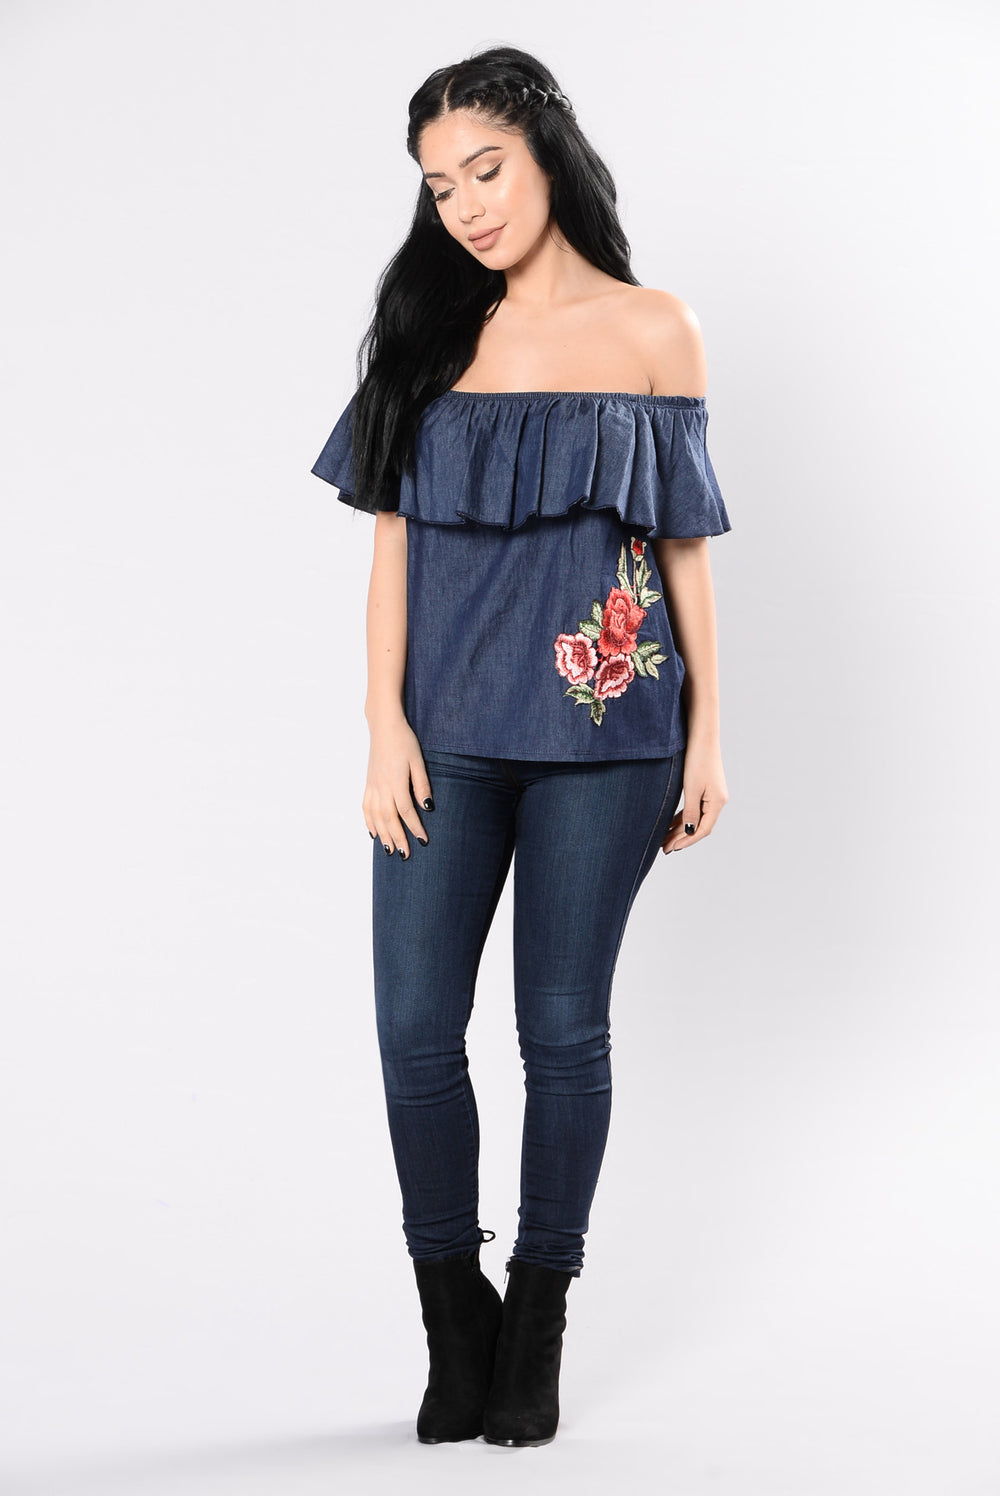 Carolina Rose Top - Dark Denim